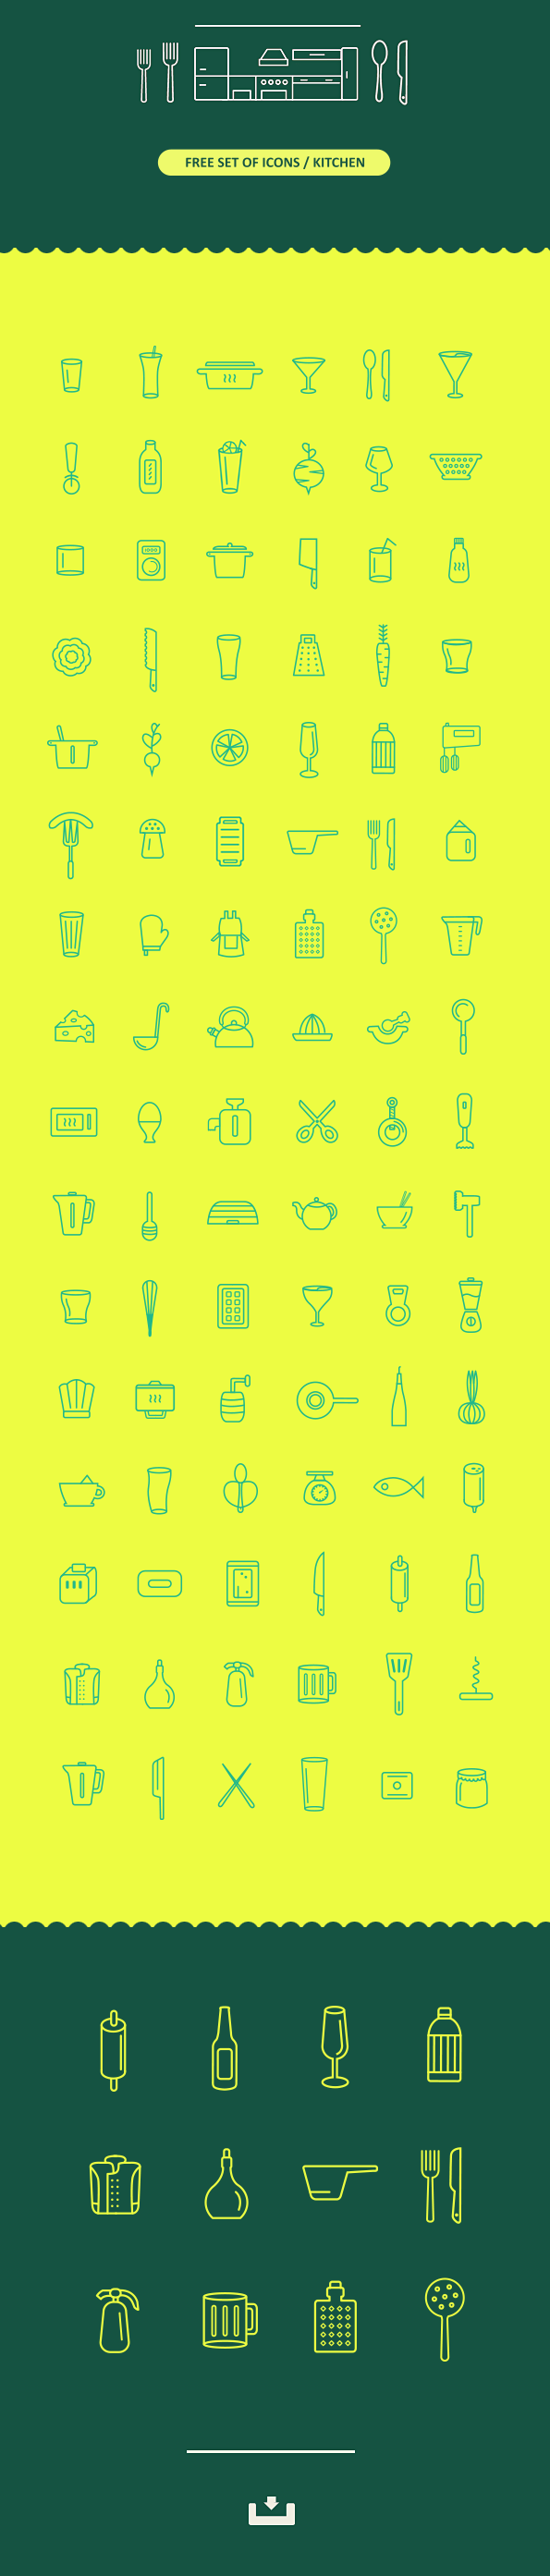 Free set of icons / Kitchen by Belc in 2015年1月的23个免费的扁平化图标合集下载